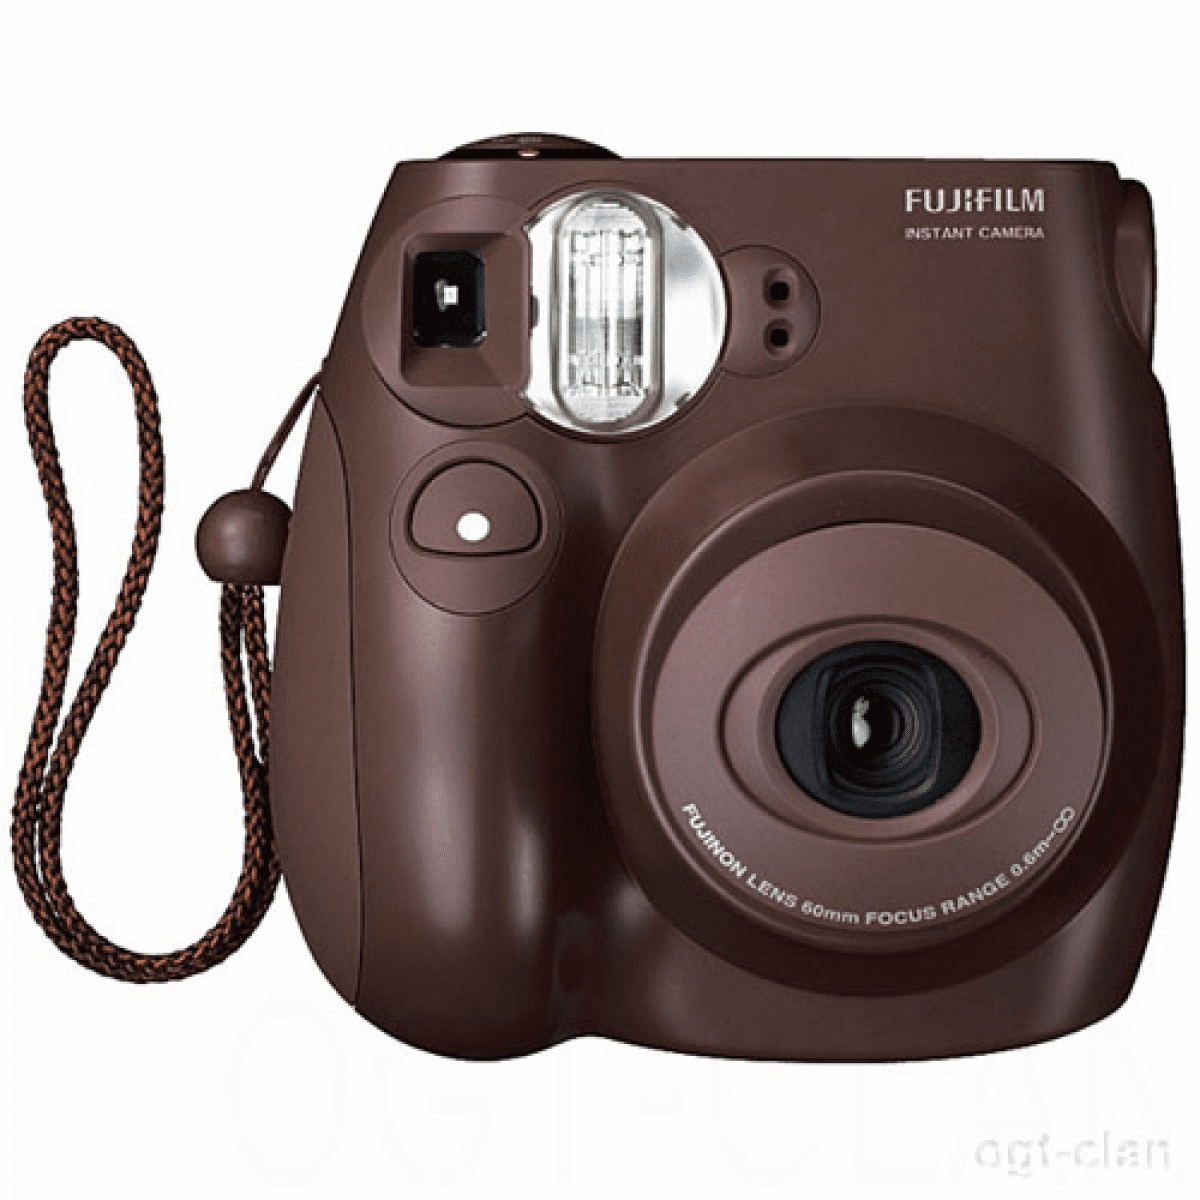 Fujifilm Instax Mini 7S Chocolate Instant Film Camera Choco